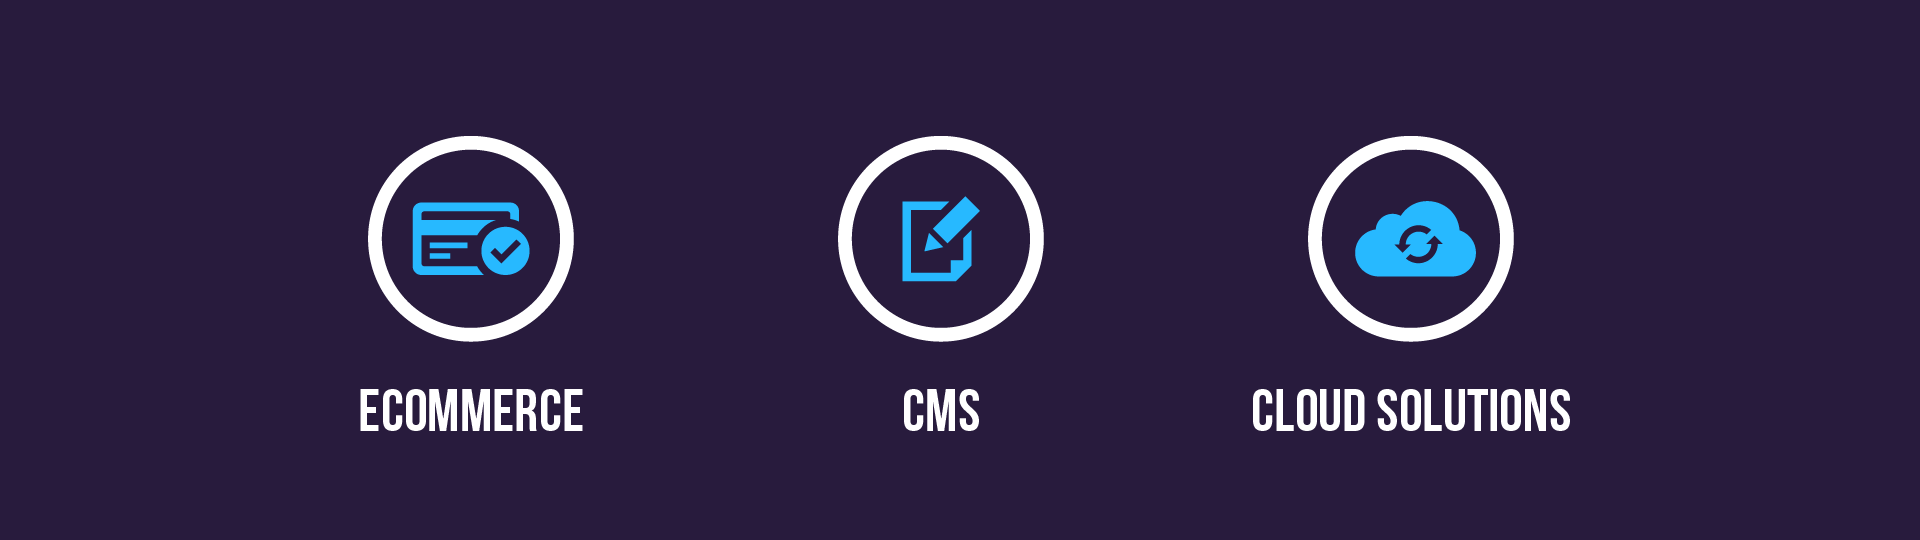 Ecommerce cms cloud solutions